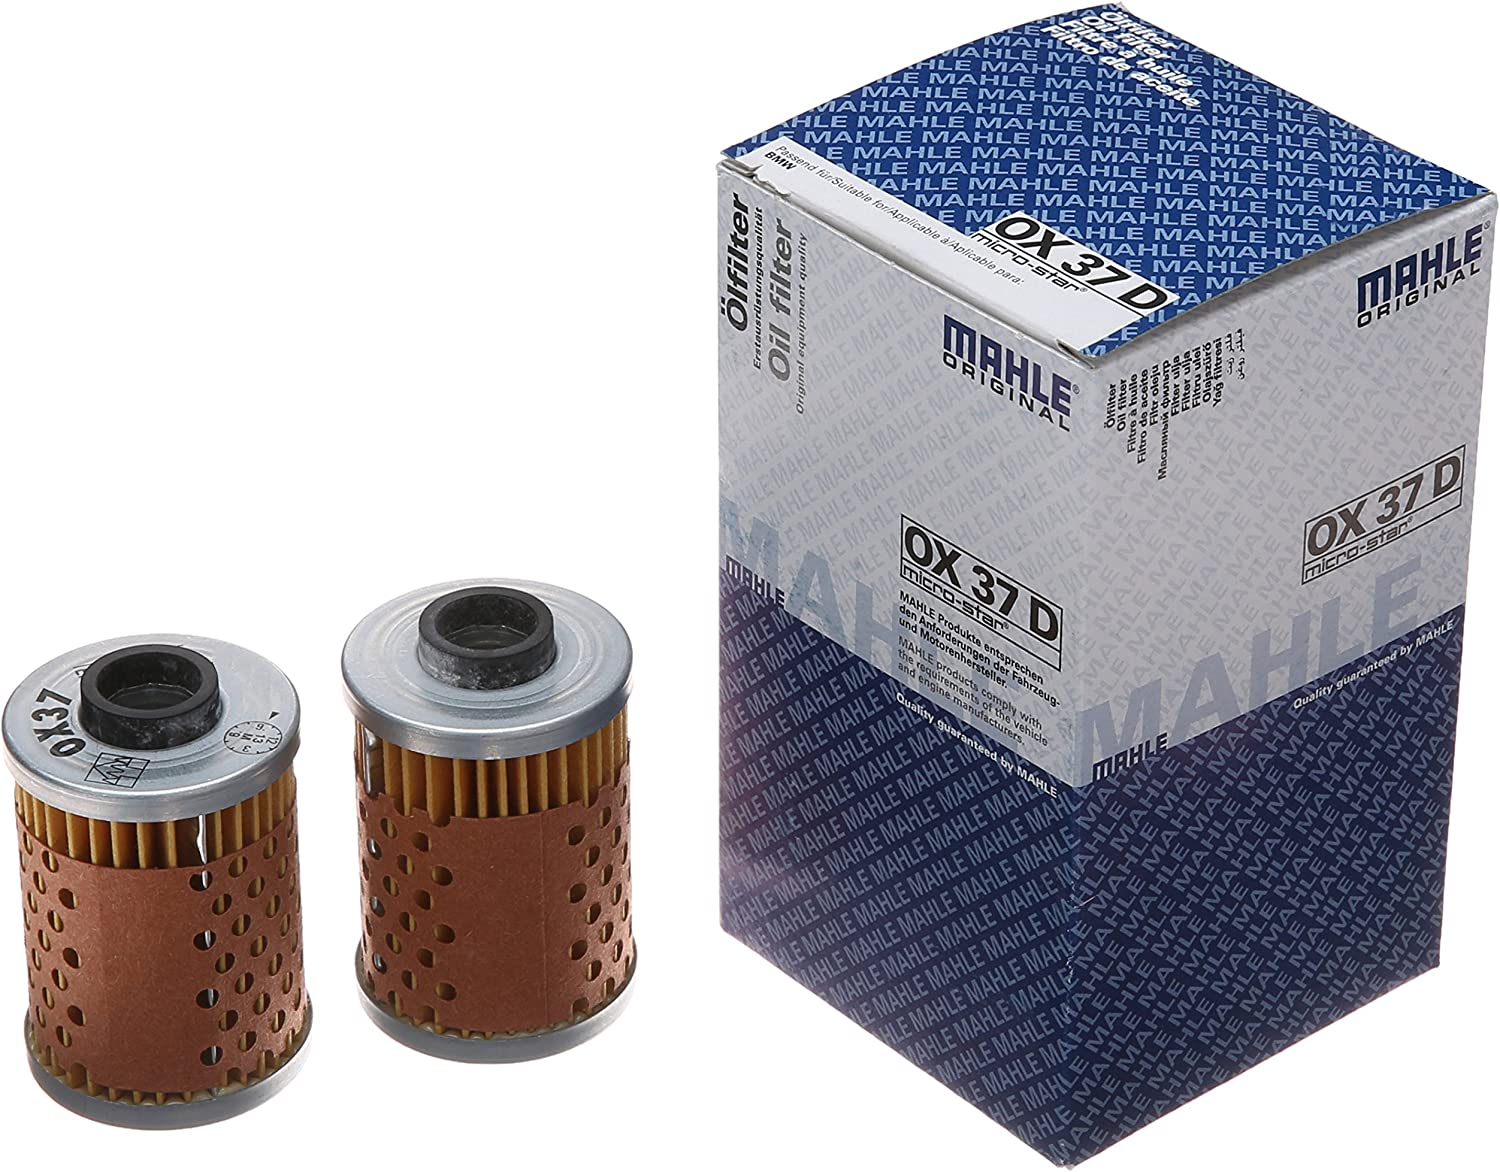 KNECHT OX 37D Oil Filter